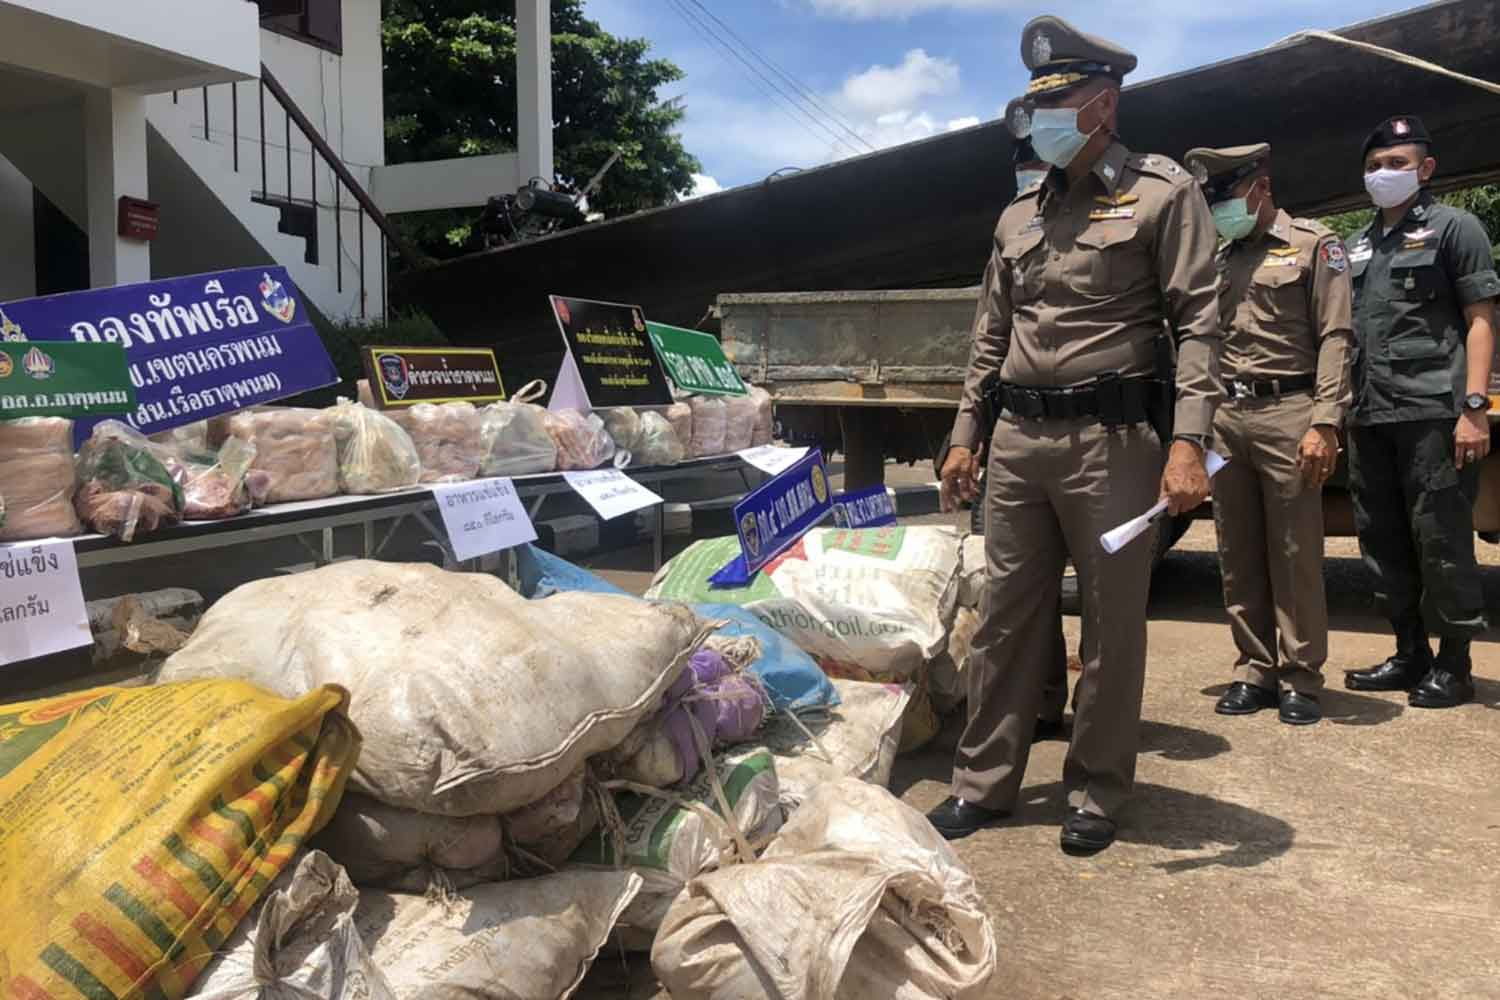 Bundles of frozen food seized on Monday night in Nakhon Phanom's That Phanom district, on display in front of the marine police station. Four Lao men were arrested as they loaded the goods onto a boat to smuggle them across the Mekong River to Laos. (Photo: Pattanapong Sripiachai)